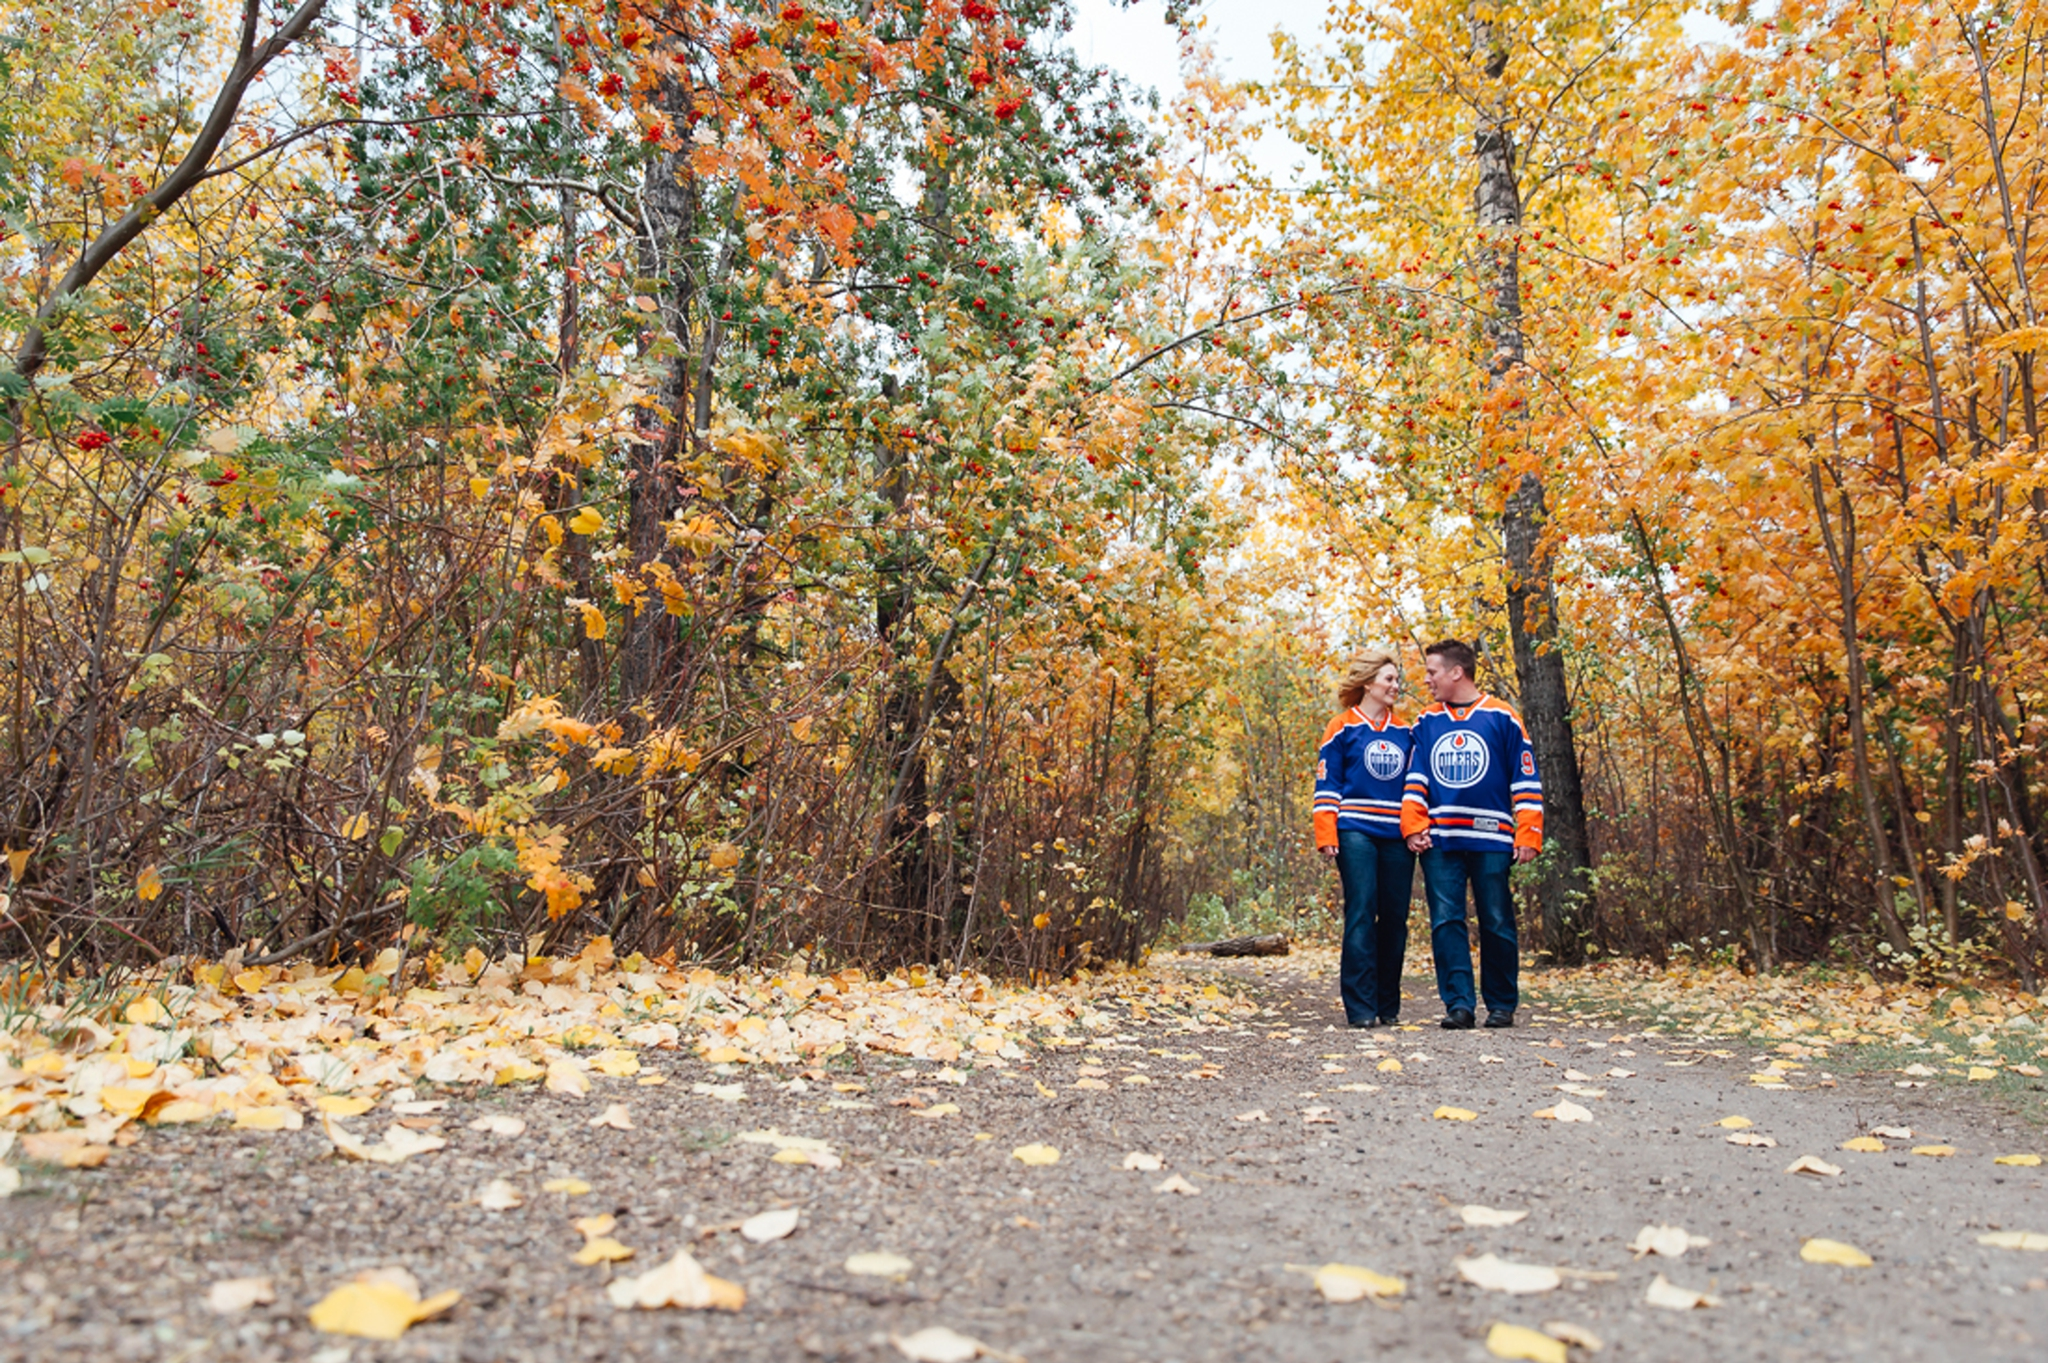 Engagement Photographs in Edmonton's River Valley